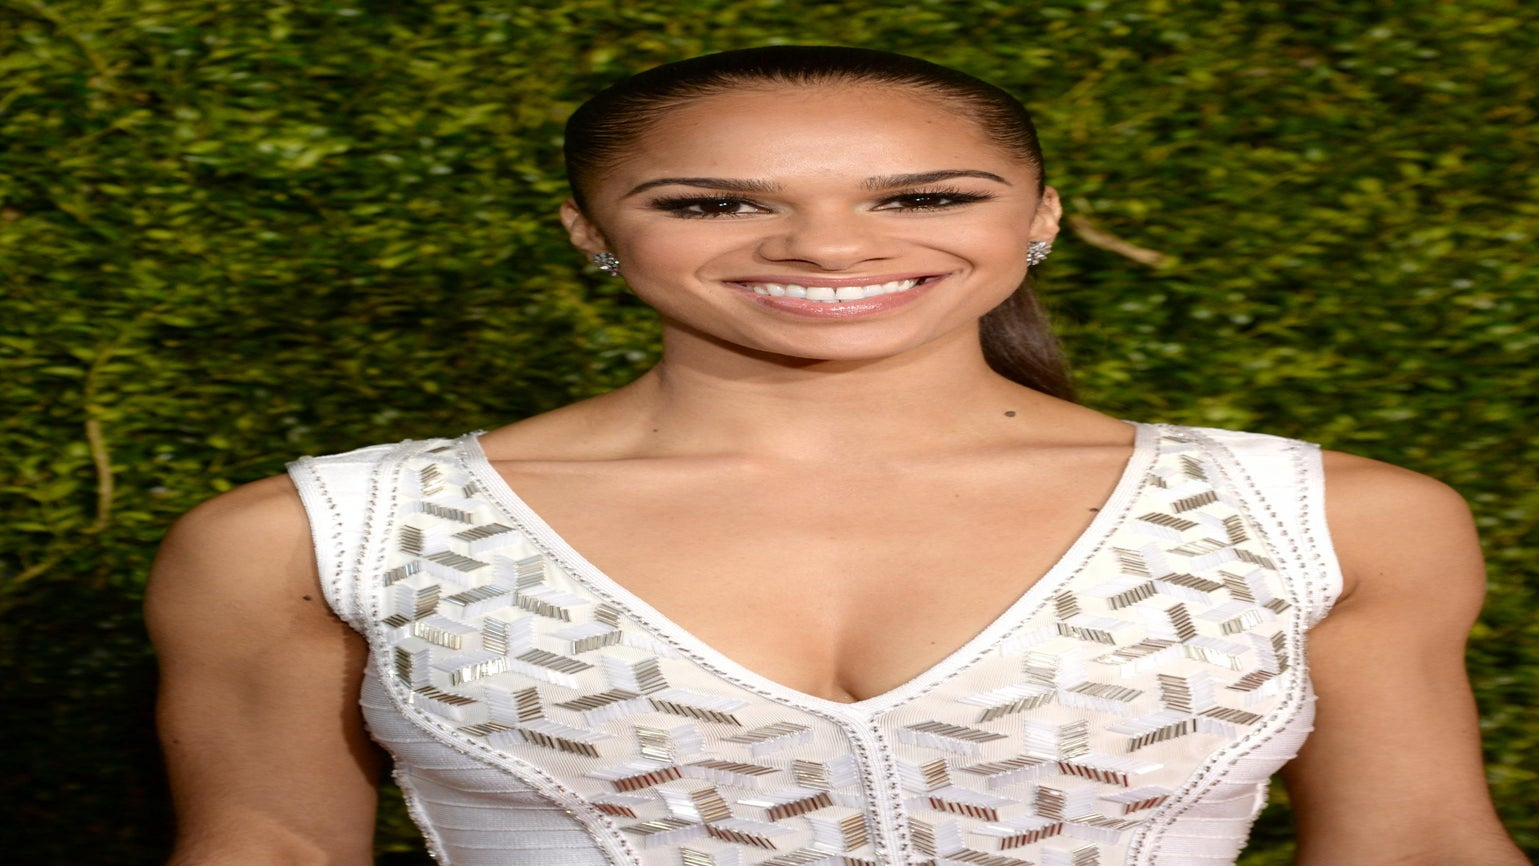 Misty Copeland to Make Broadway Debut in 'On the Town'